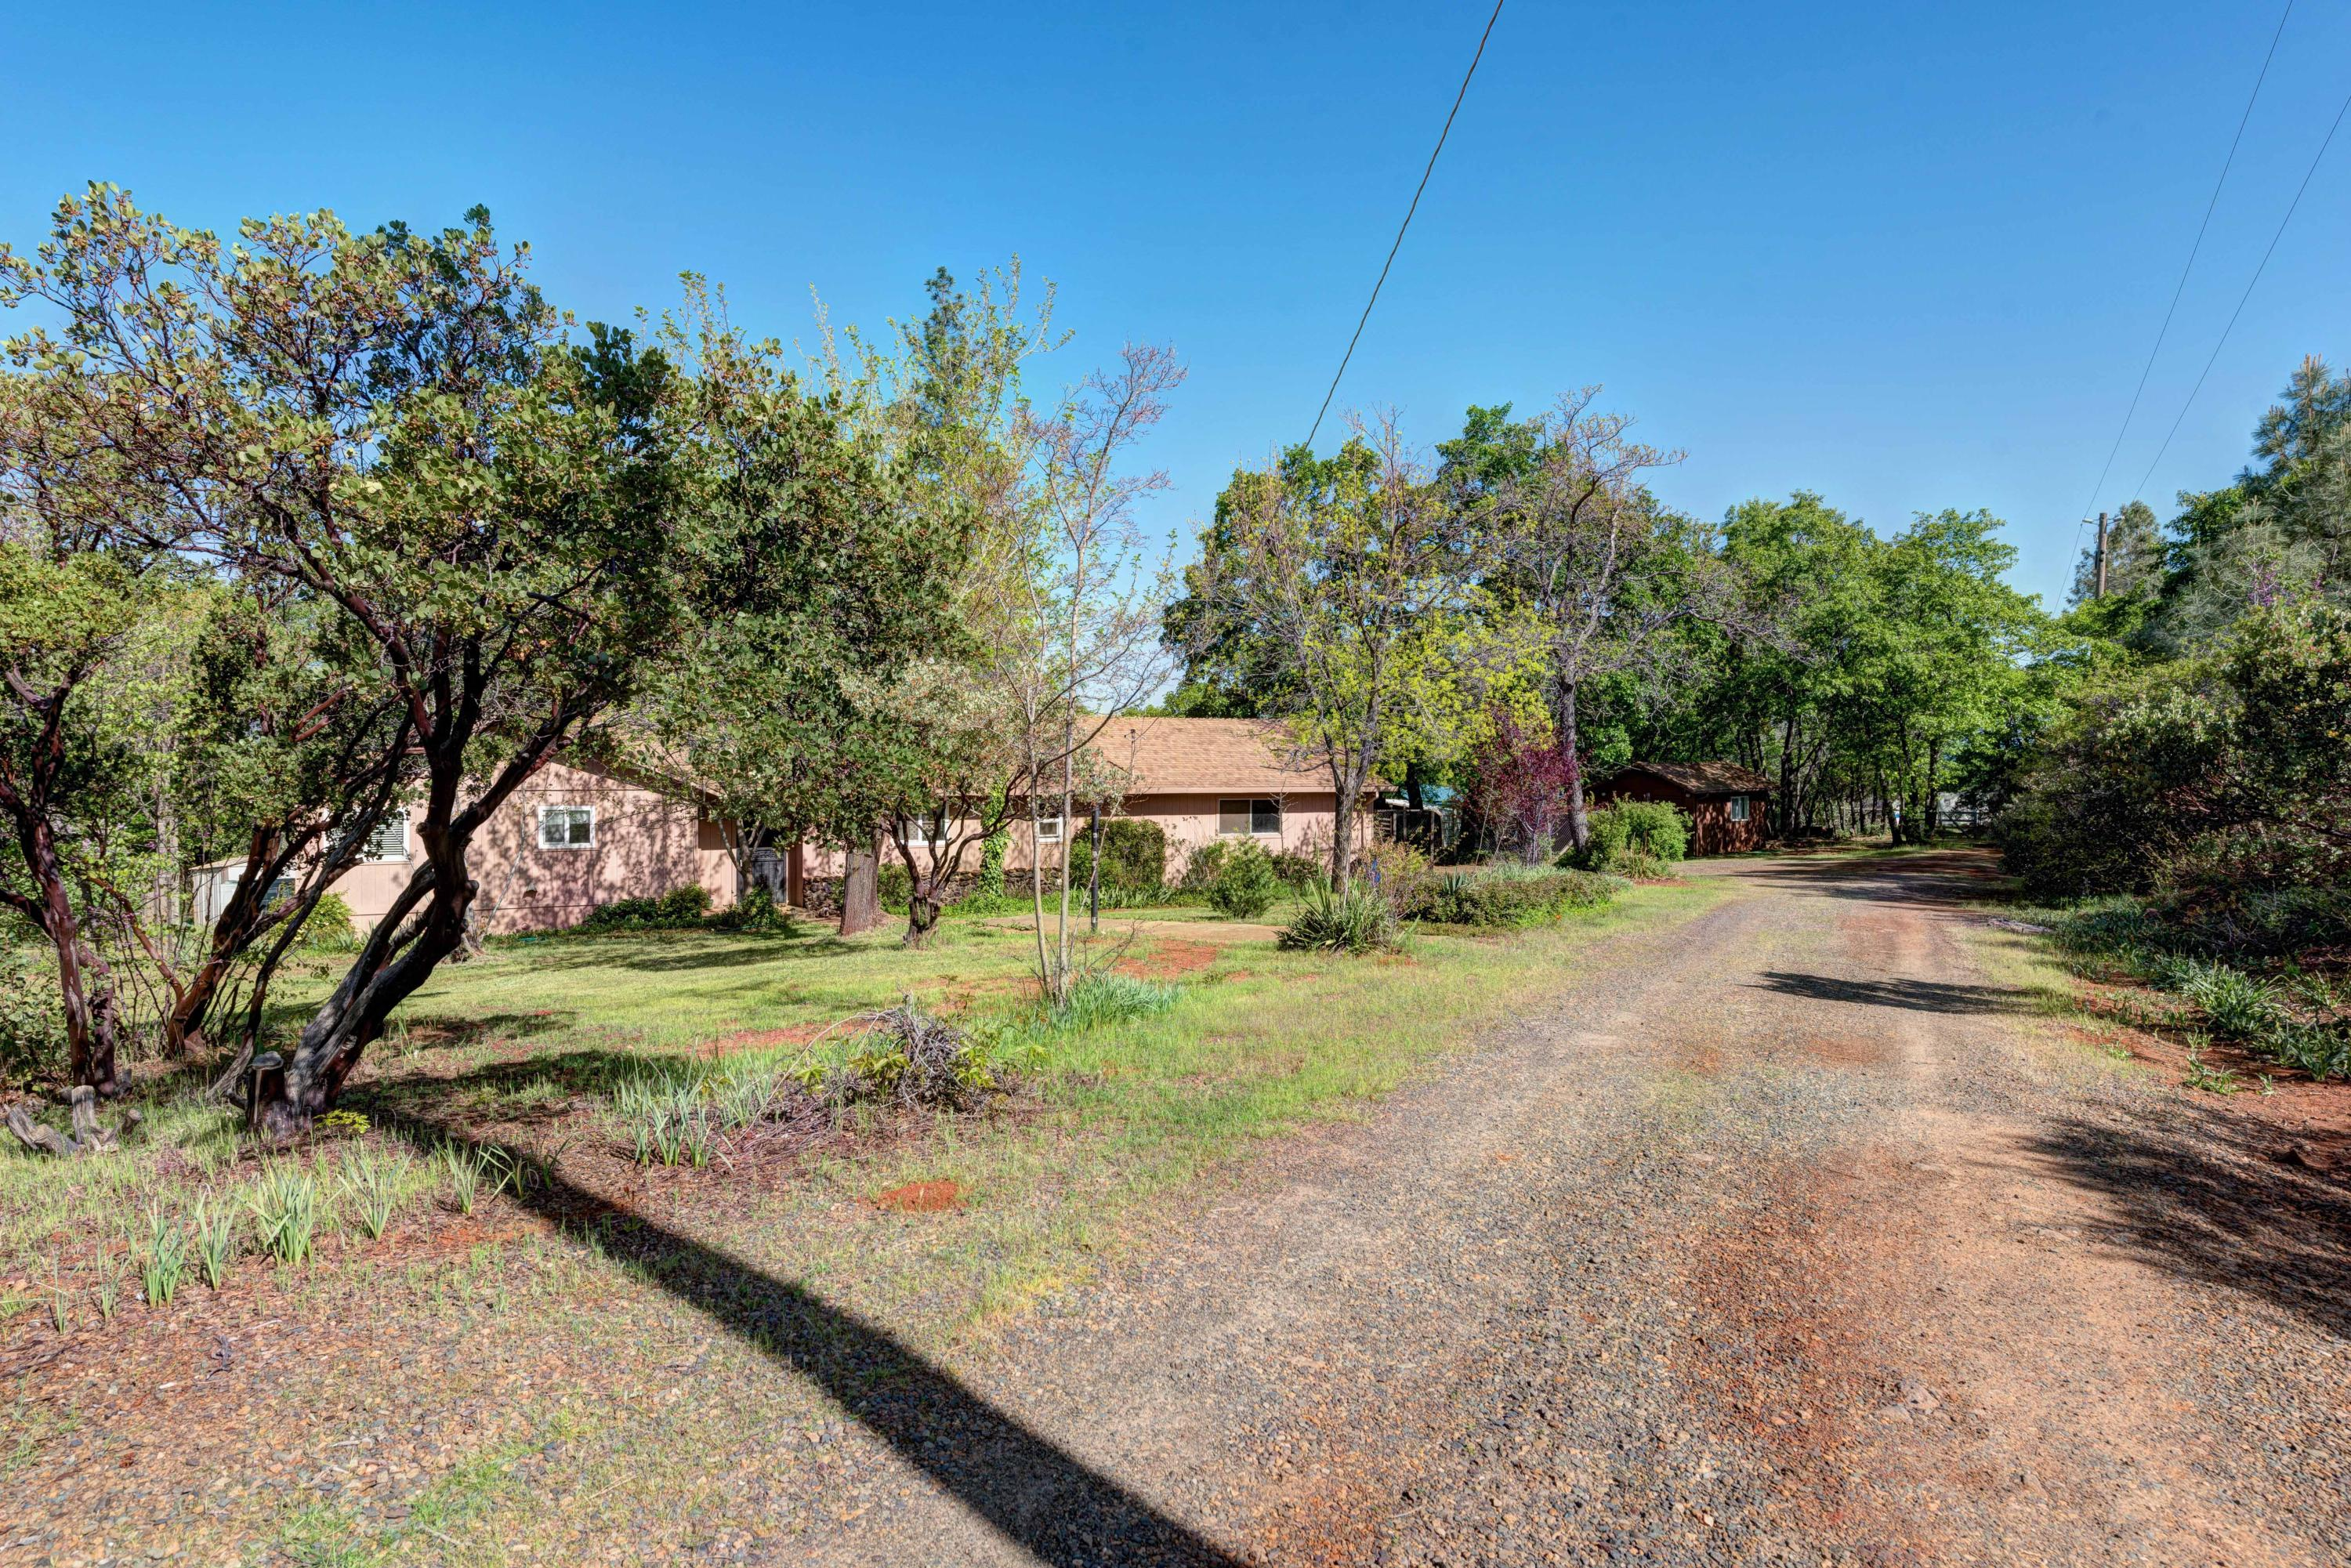 28498 State Highway 44, Shingletown, CA 96088